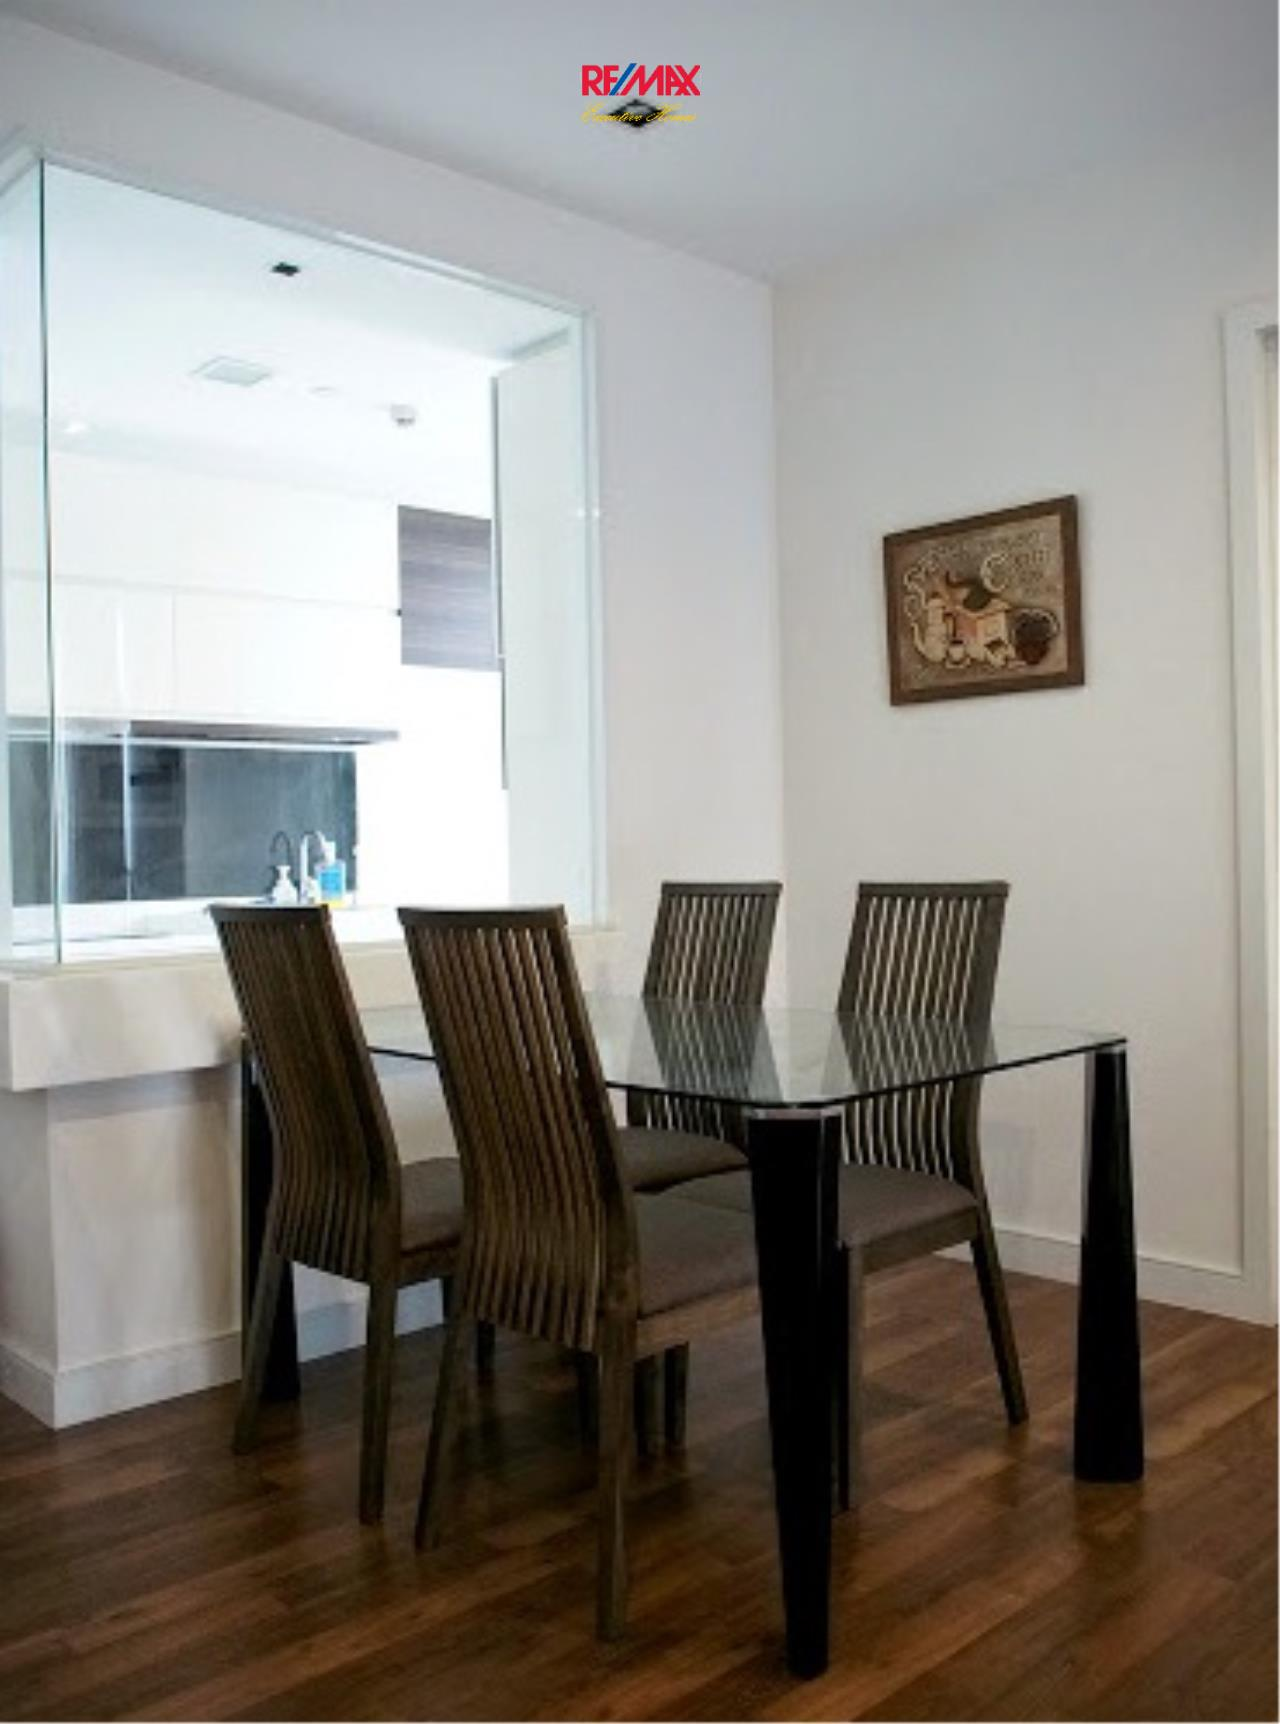 RE/MAX Executive Homes Agency's Cozy 2 Bedroom for Sale The Room 62 5